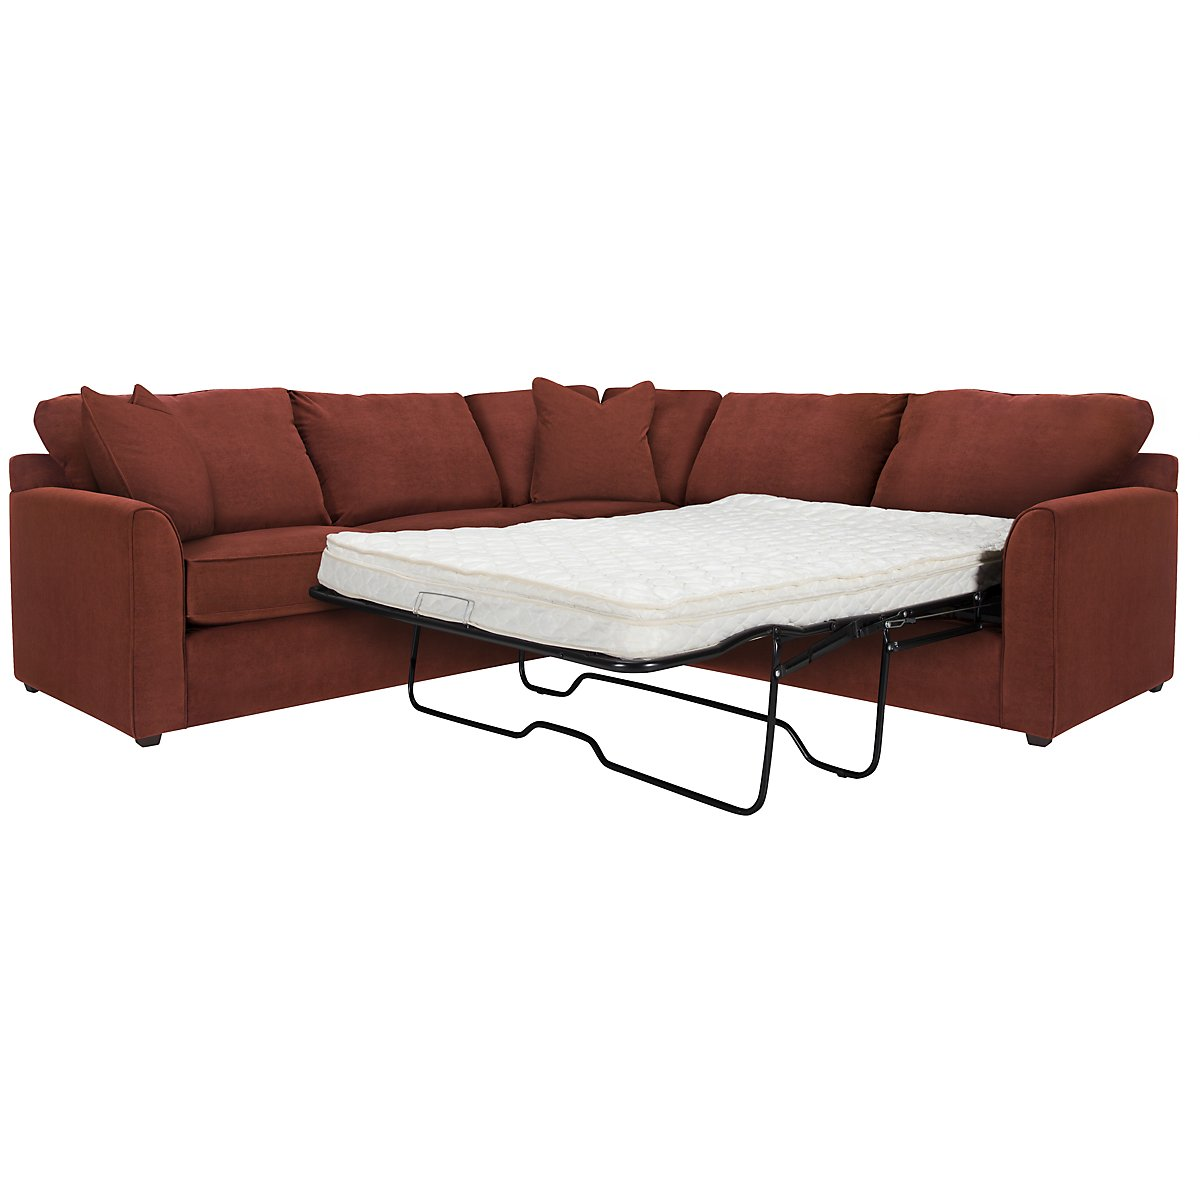 Express3 Red Microfiber Two-Arm Right Innerspring Sleeper Sectional